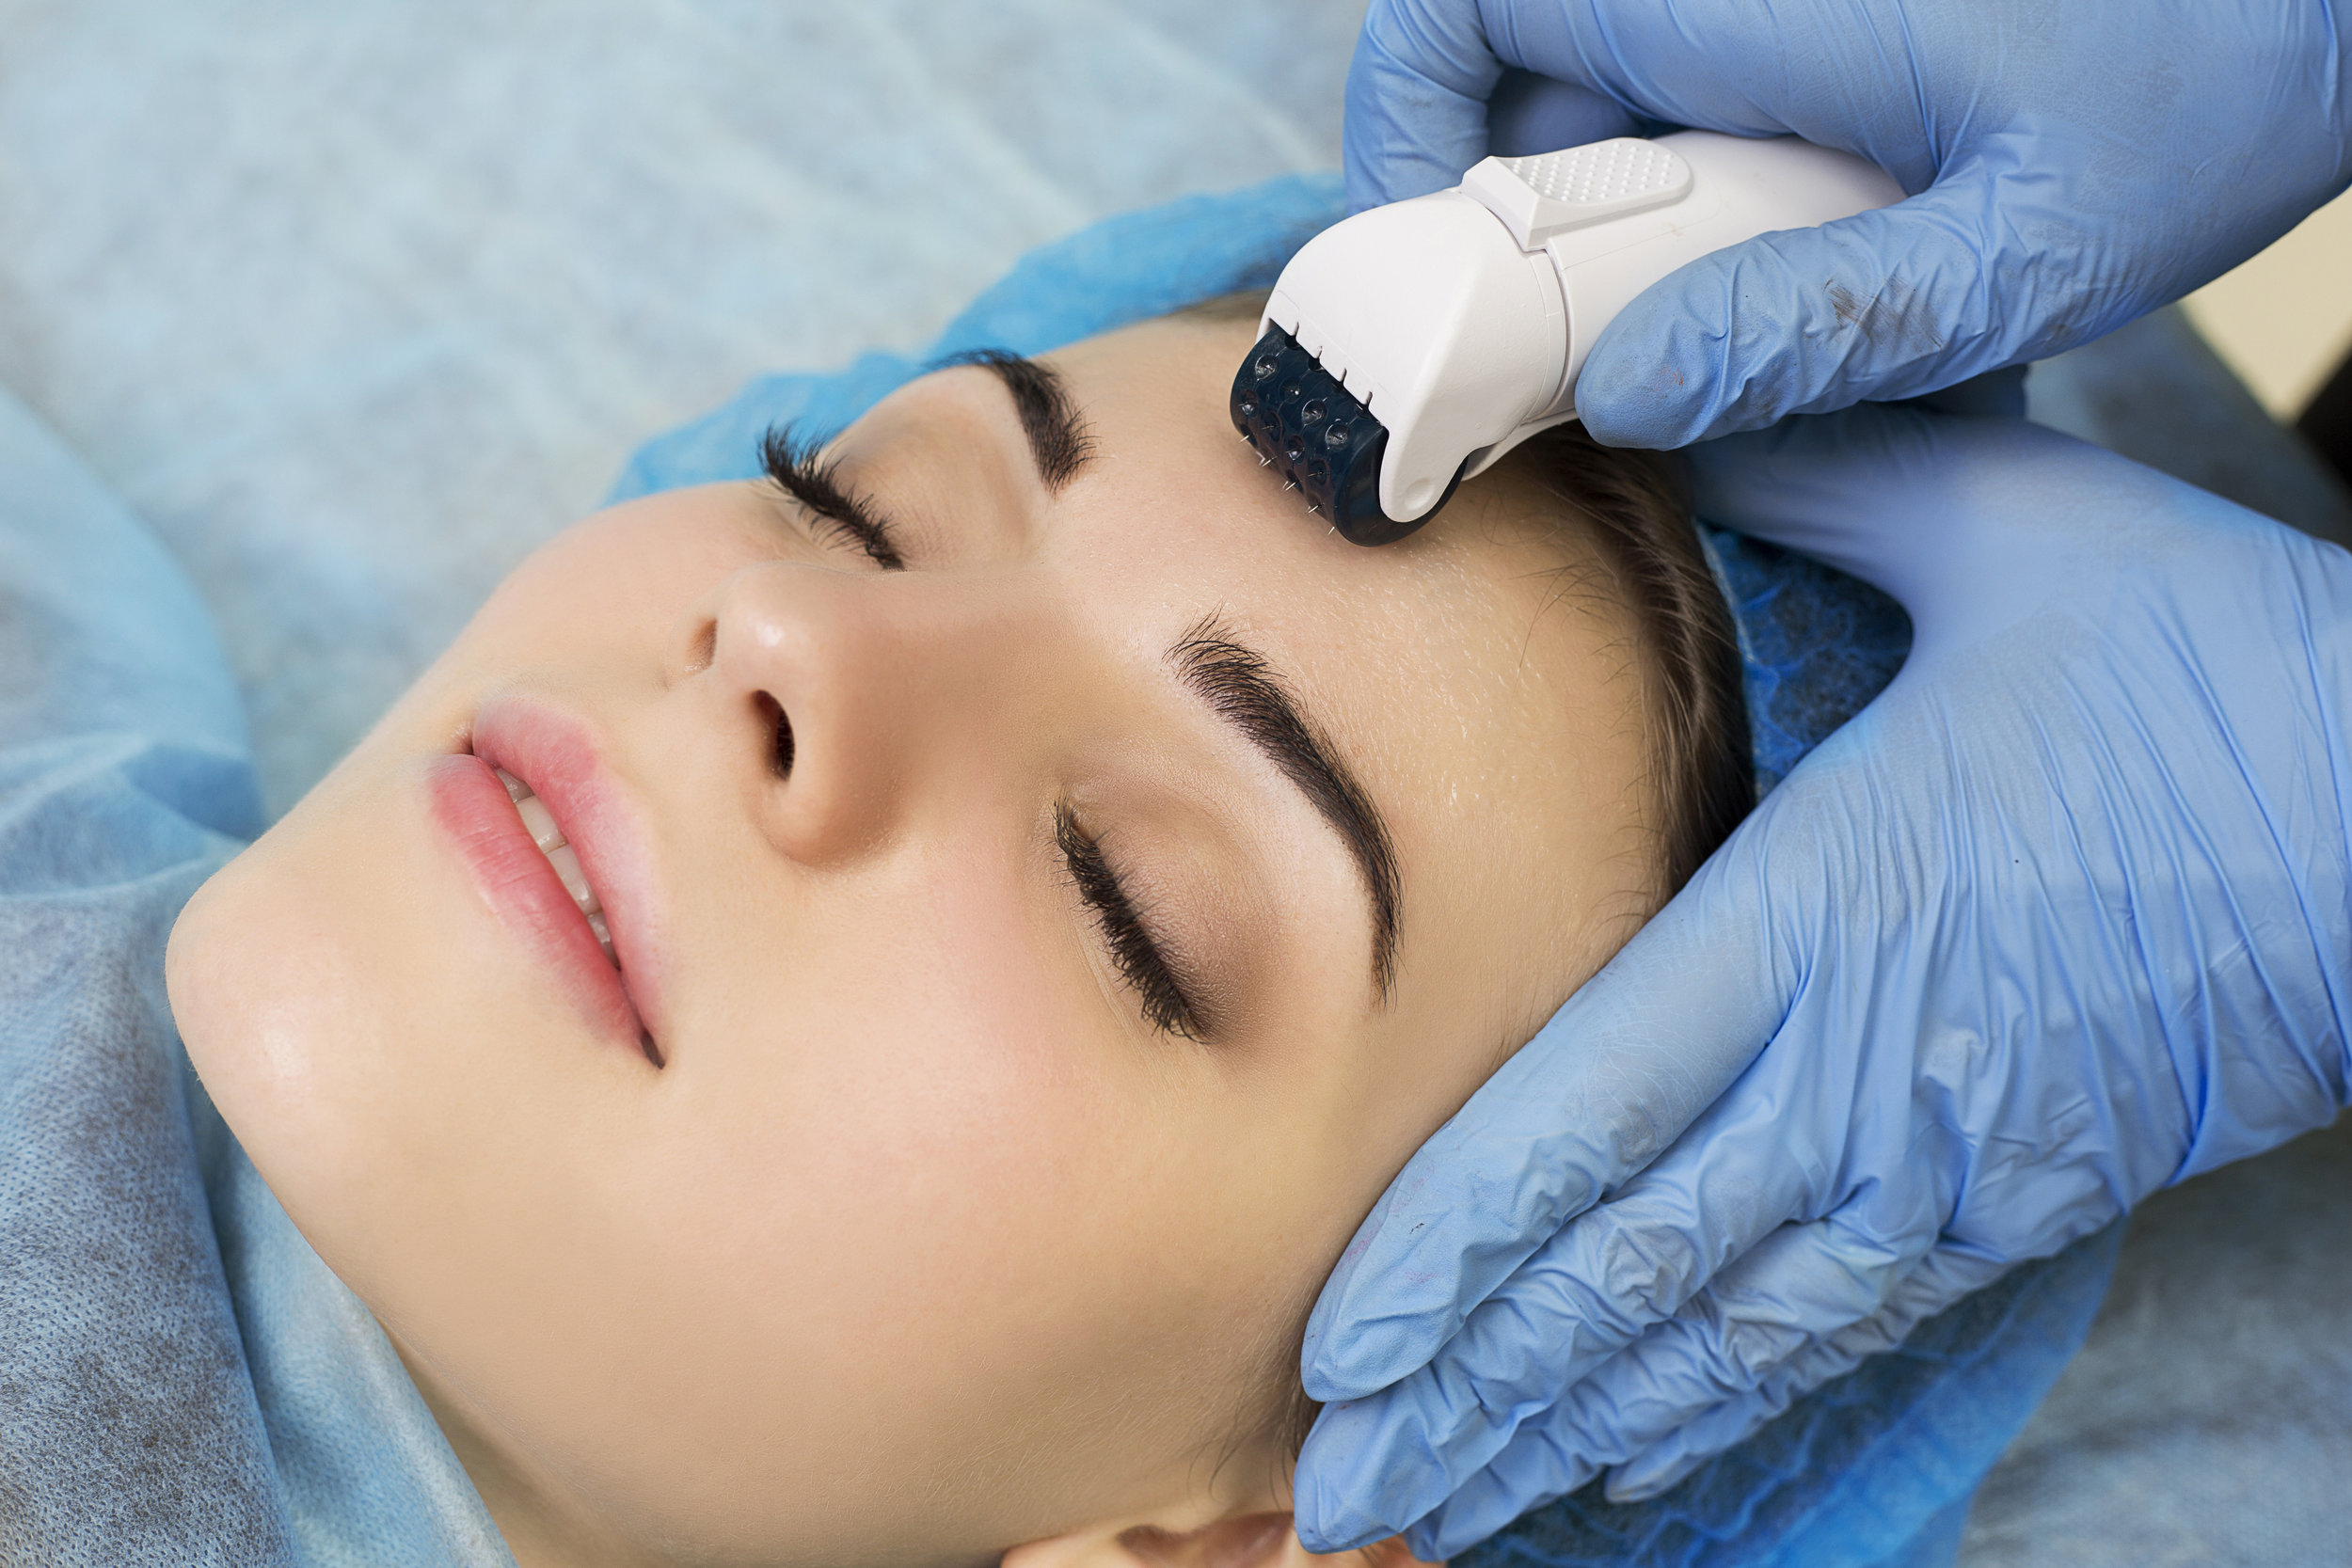 WHAT IS MICRO-NEEDLING? - A micro-needling treatment uses a fractional micro-needling device that works to tighten, lift and rejuvenate the skin. It's effective in reducing fine lines and wrinkles, stretch marks, surgical and acne scars. Fractional micro-needling or collagen induction therapy (CIT) uses needles to pierce the skin in a controlled and precise pattern. Compared to other skin rejuvenation treatments, it is safe on any skin type, has a short treatment time and minimal discomfort with virtually no downtime. Micro-needling : a revolutionary breakthrough for beautiful skin.-It tightens, lifts and rejuvenates skin.- Reduces acne scars, surgical scars and other scarring -Improves wrinkles and fine lines- Improves stretch marks